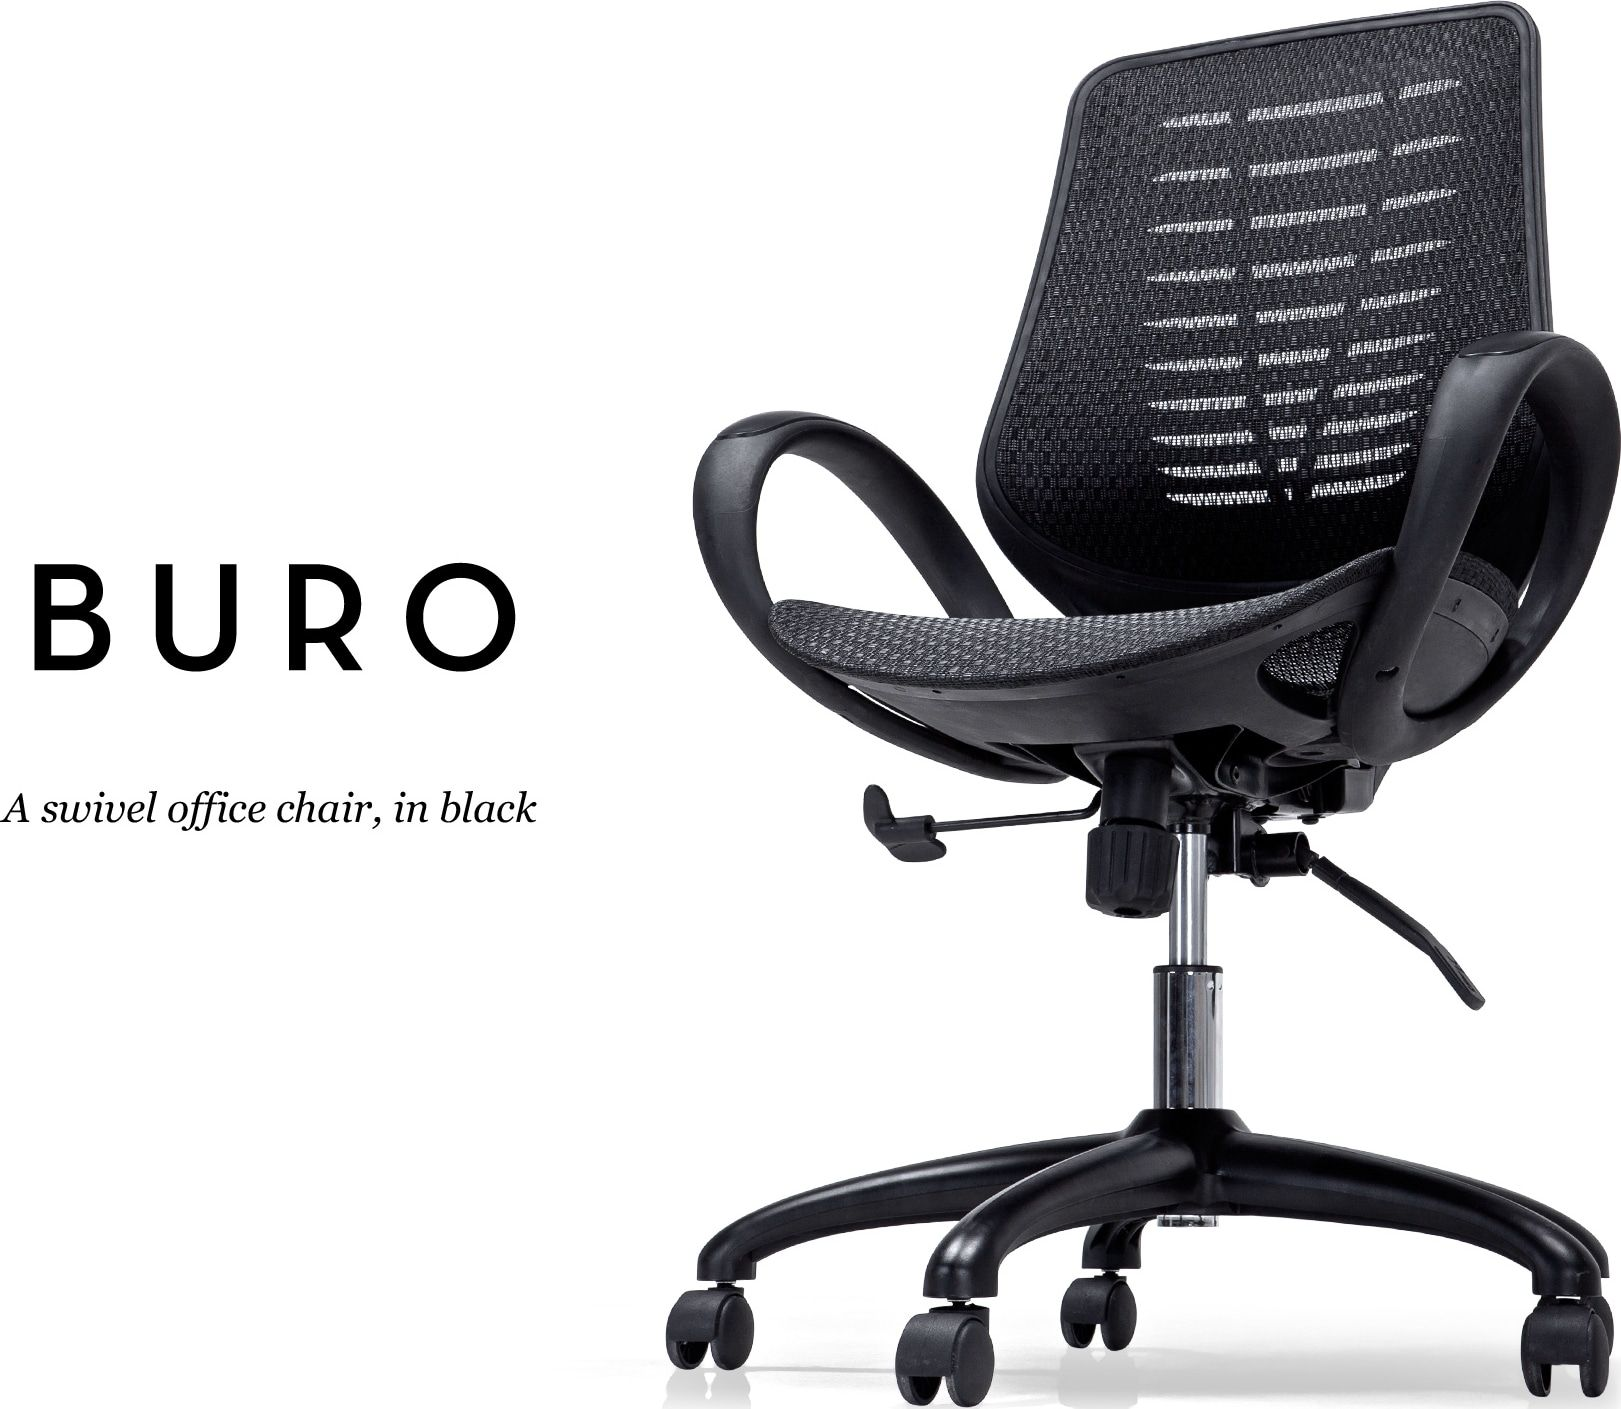 Buro Swivel Office Chair, Black from Express